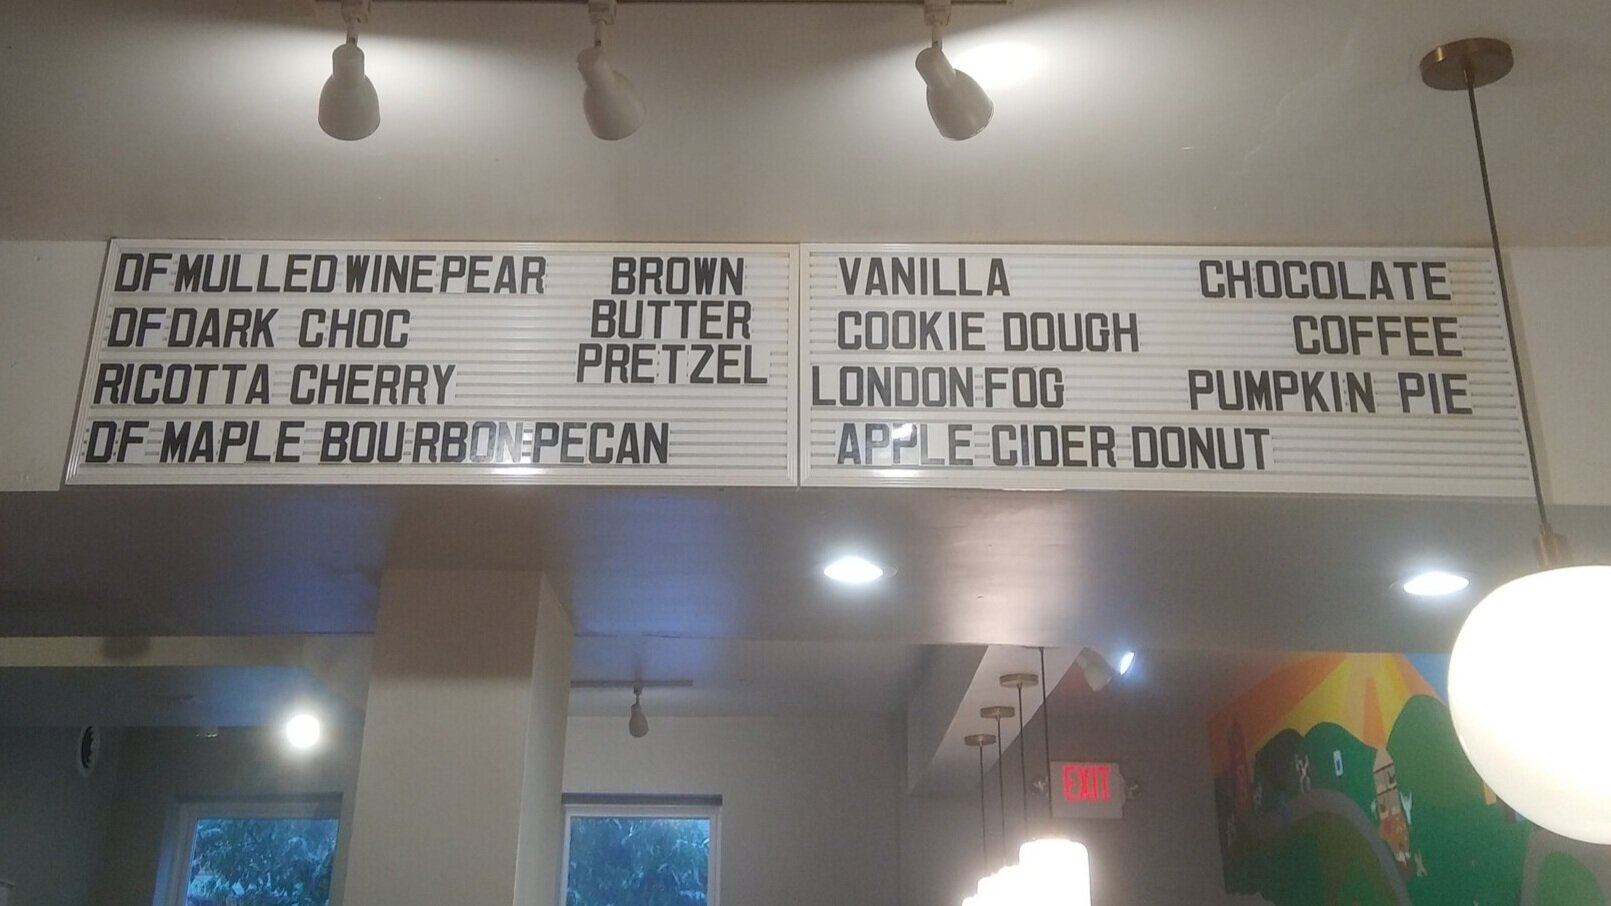 My goal? Try all the ice cream flavors here.